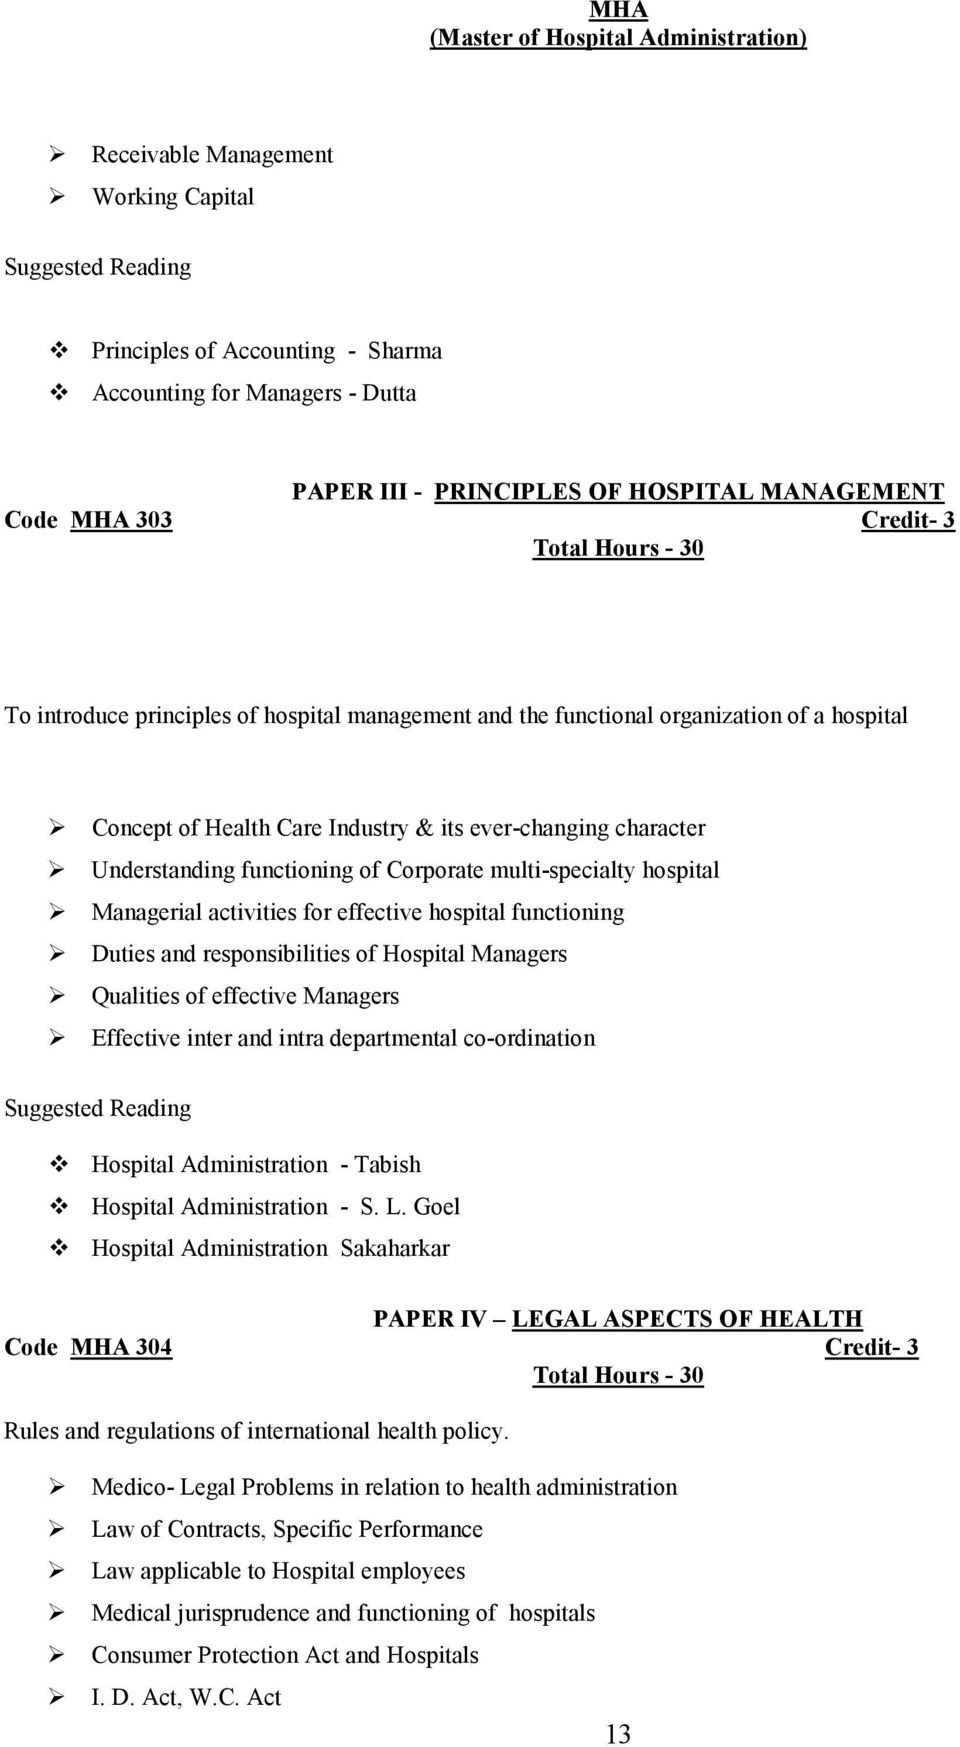 Managerial activities for effective hospital functioning Duties and responsibilities of Hospital Managers Qualities of effective Managers Effective inter and intra departmental co-ordination Hospital